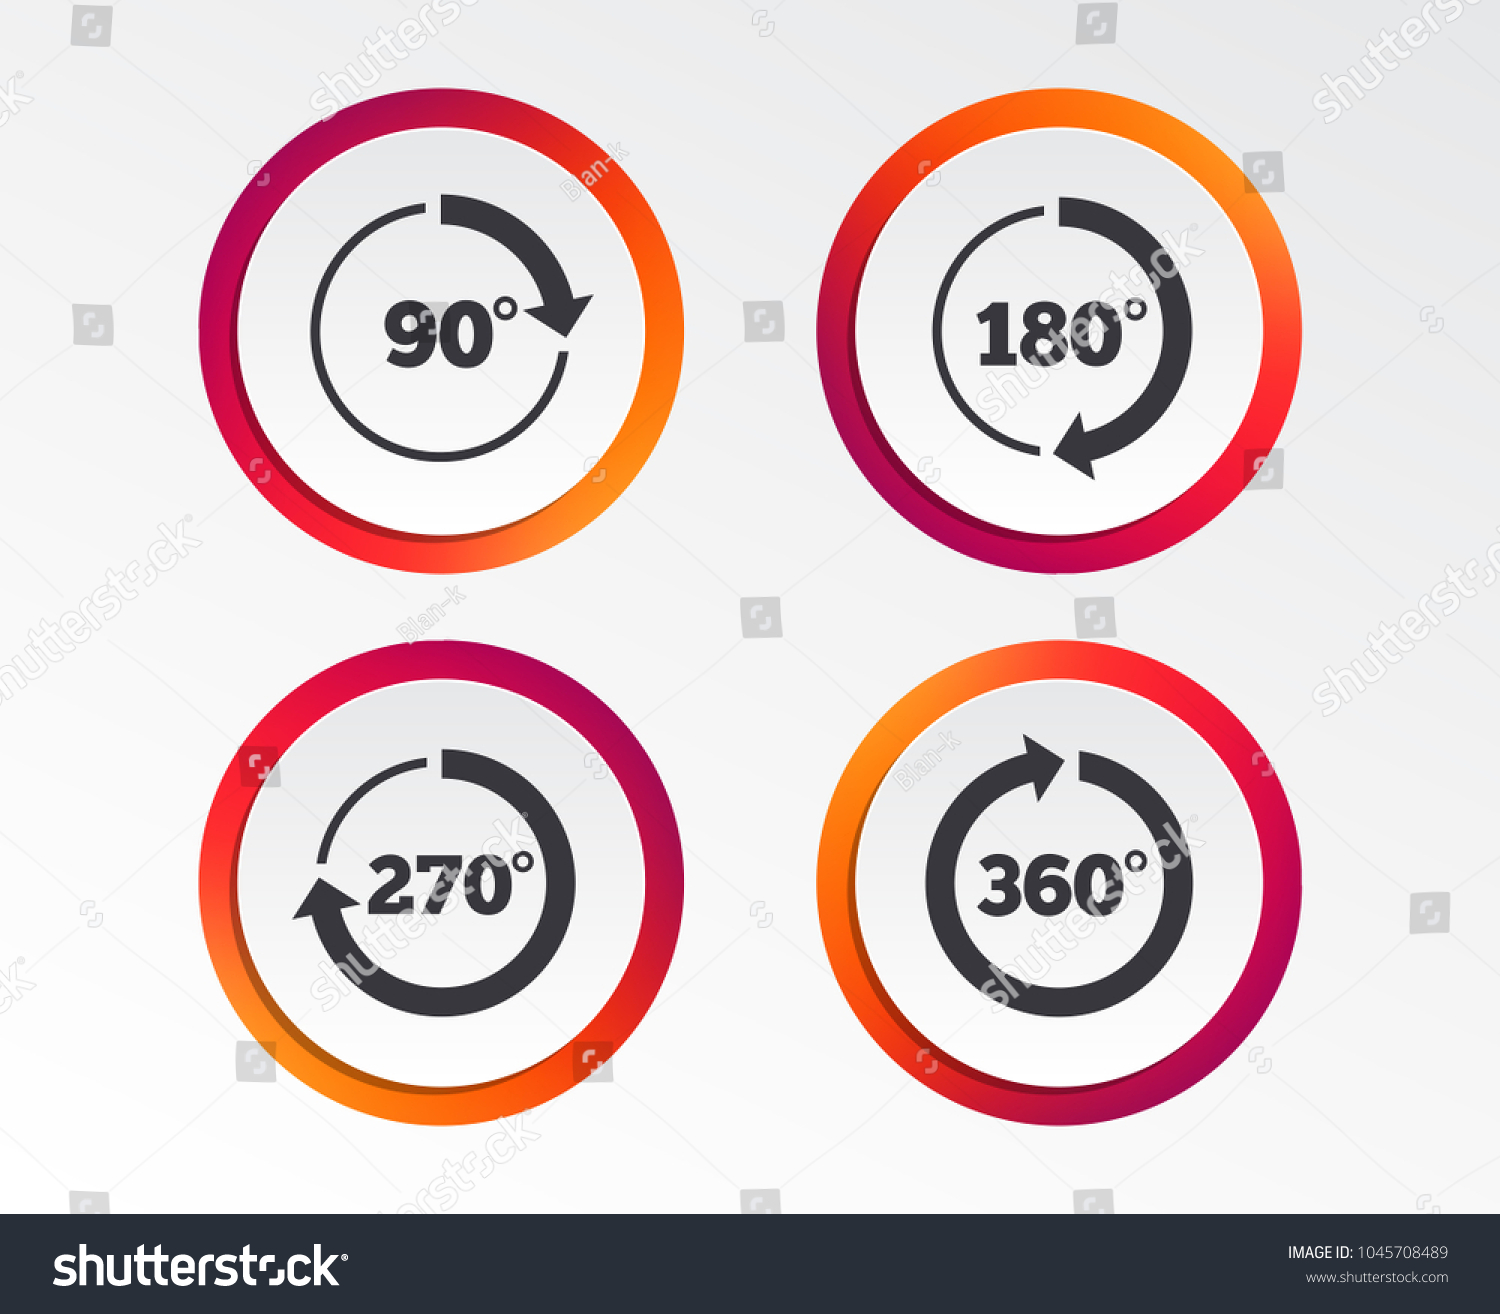 Angle 45360 Degrees Circle Icons Geometry Stock Vector